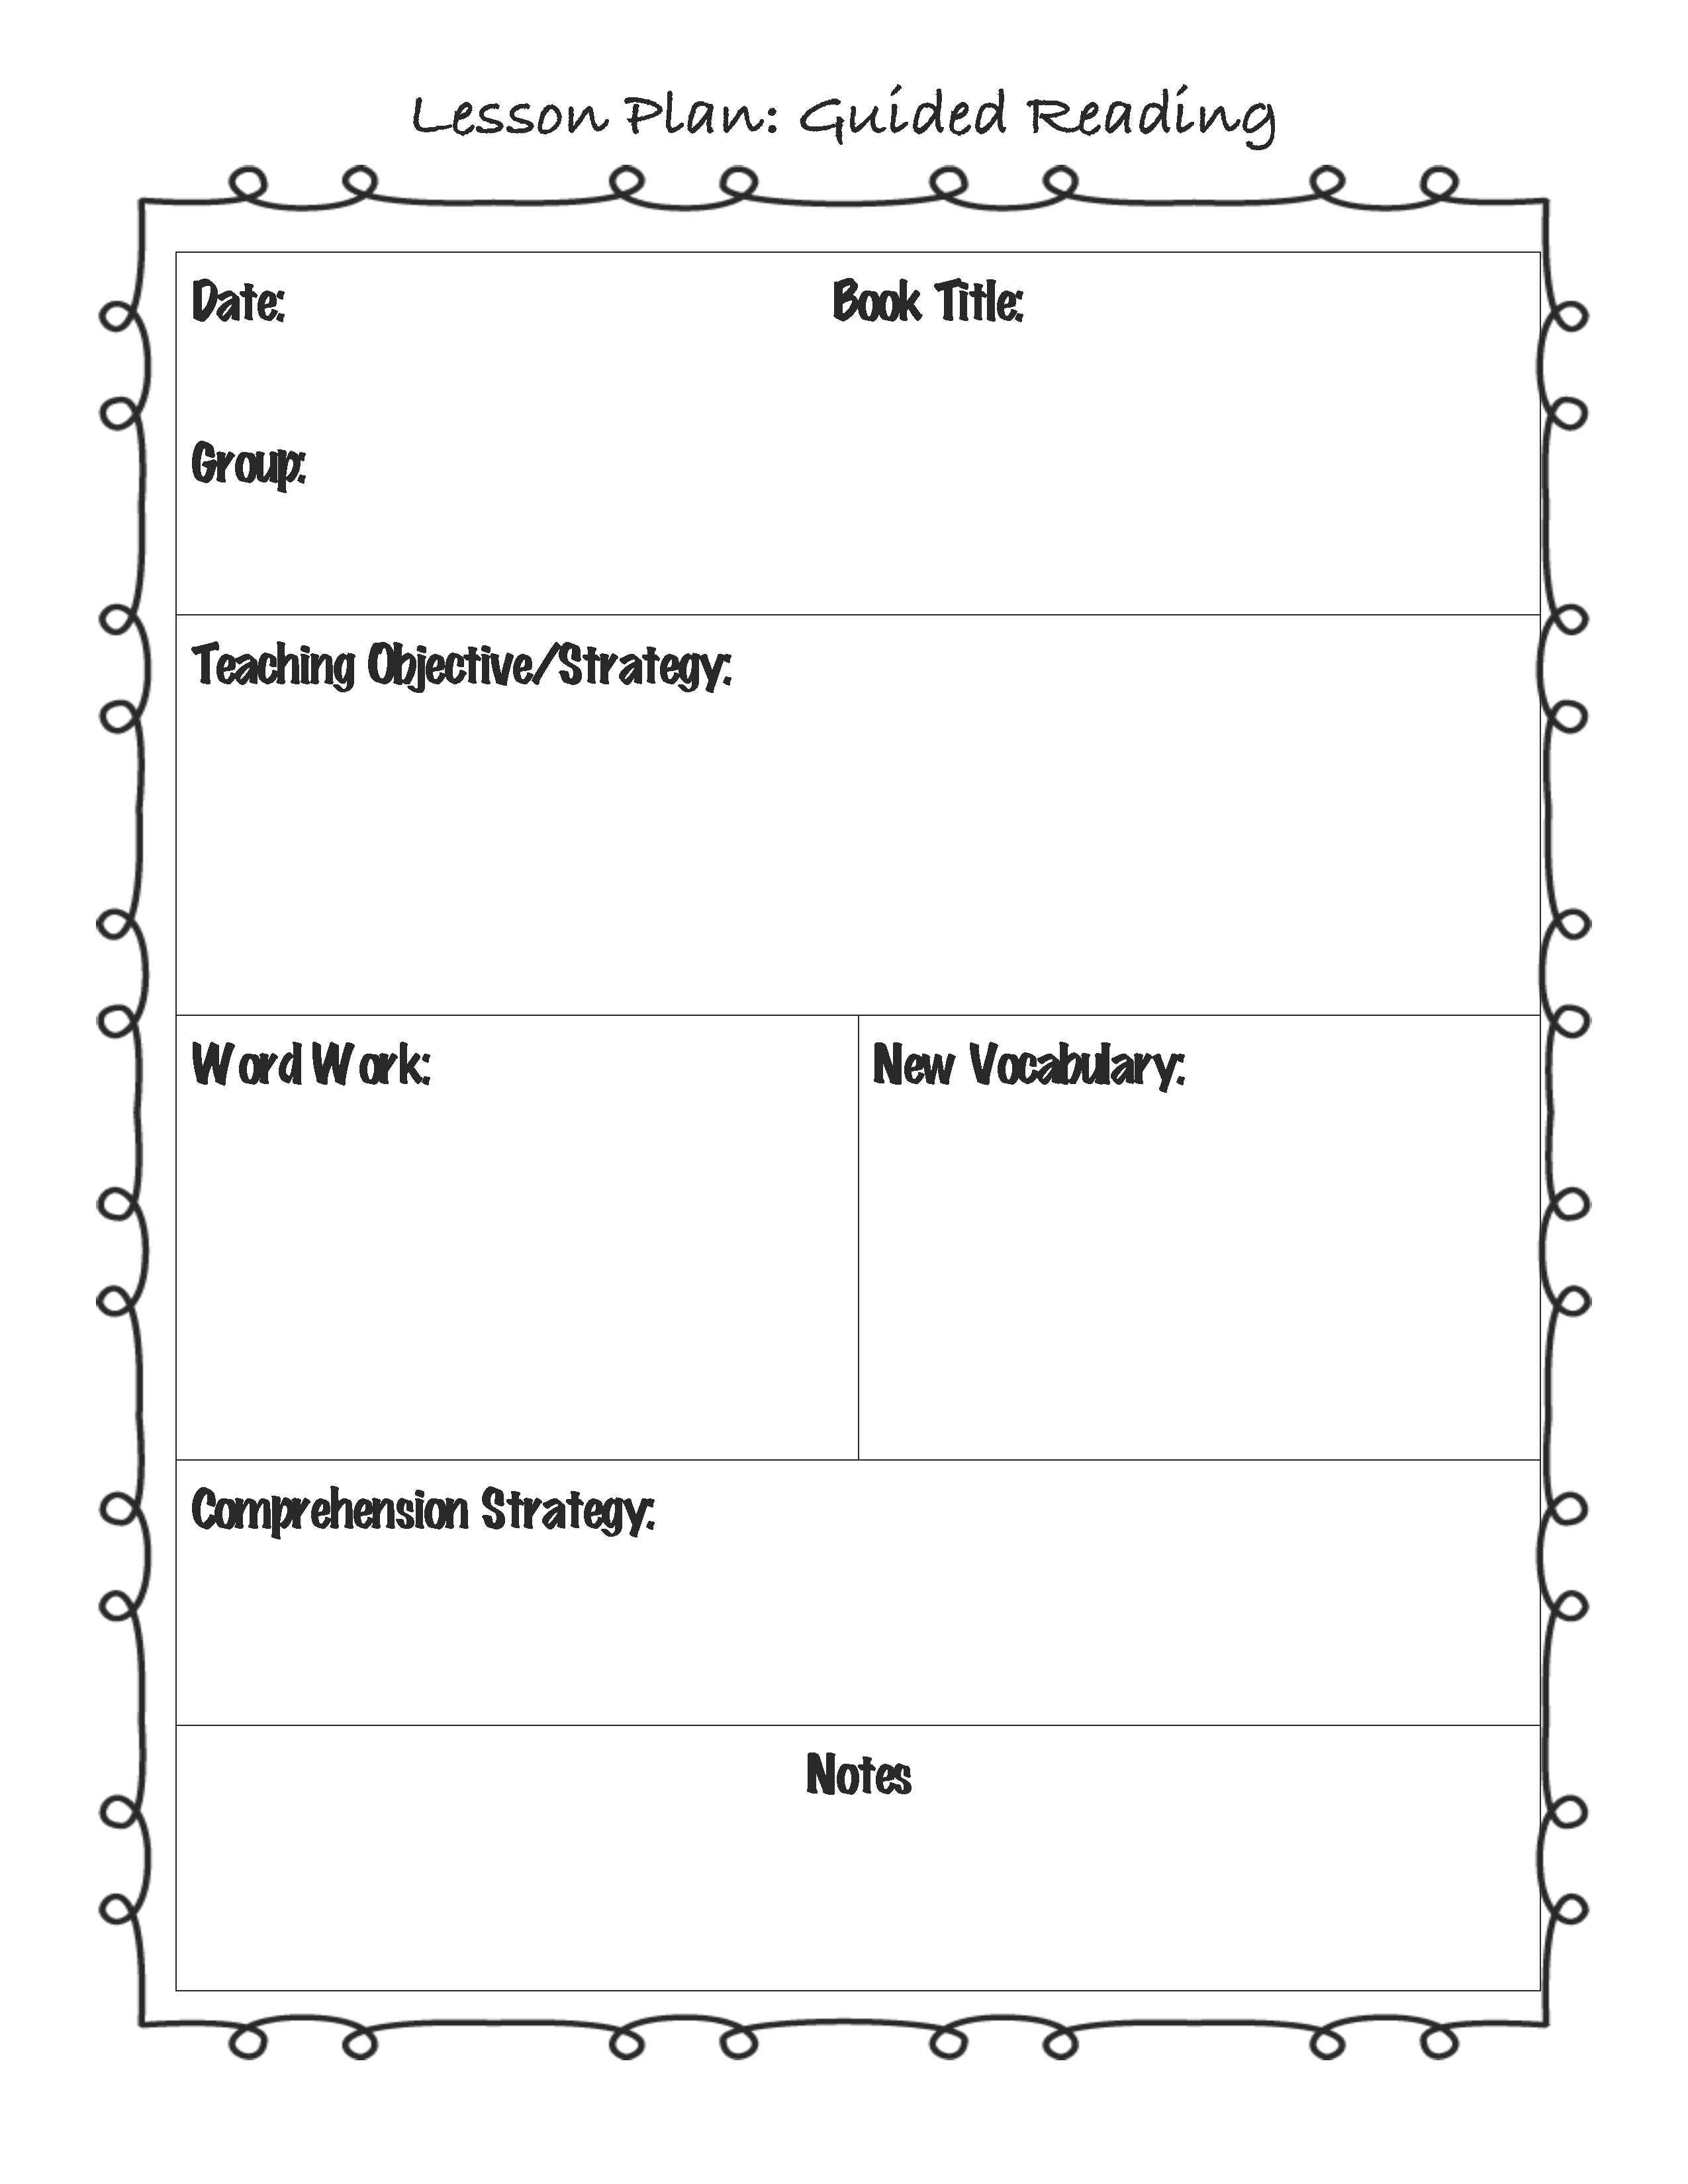 Guided Reading Lesson Plan Template For The Classroom - Free guided reading lesson plan template